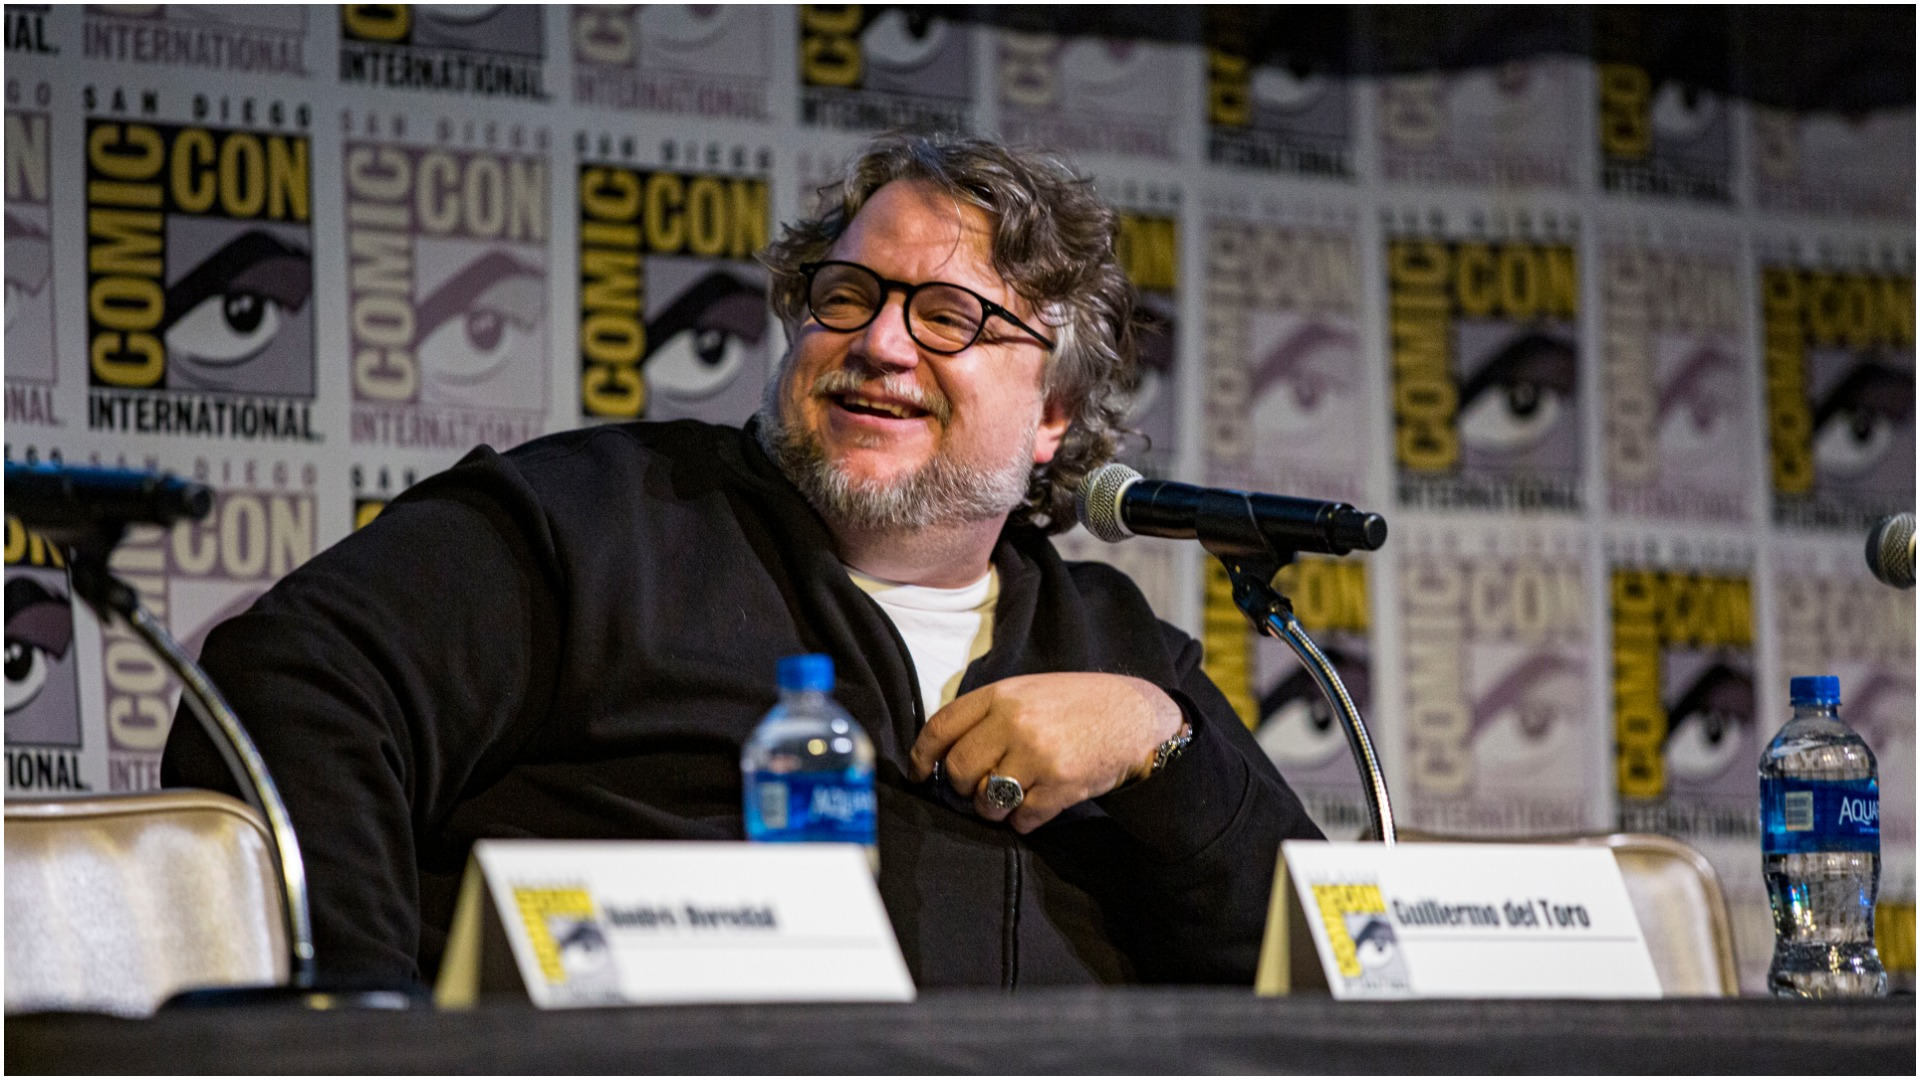 Guillermo del Toro breaks down how many unmade films he's worked on over the years